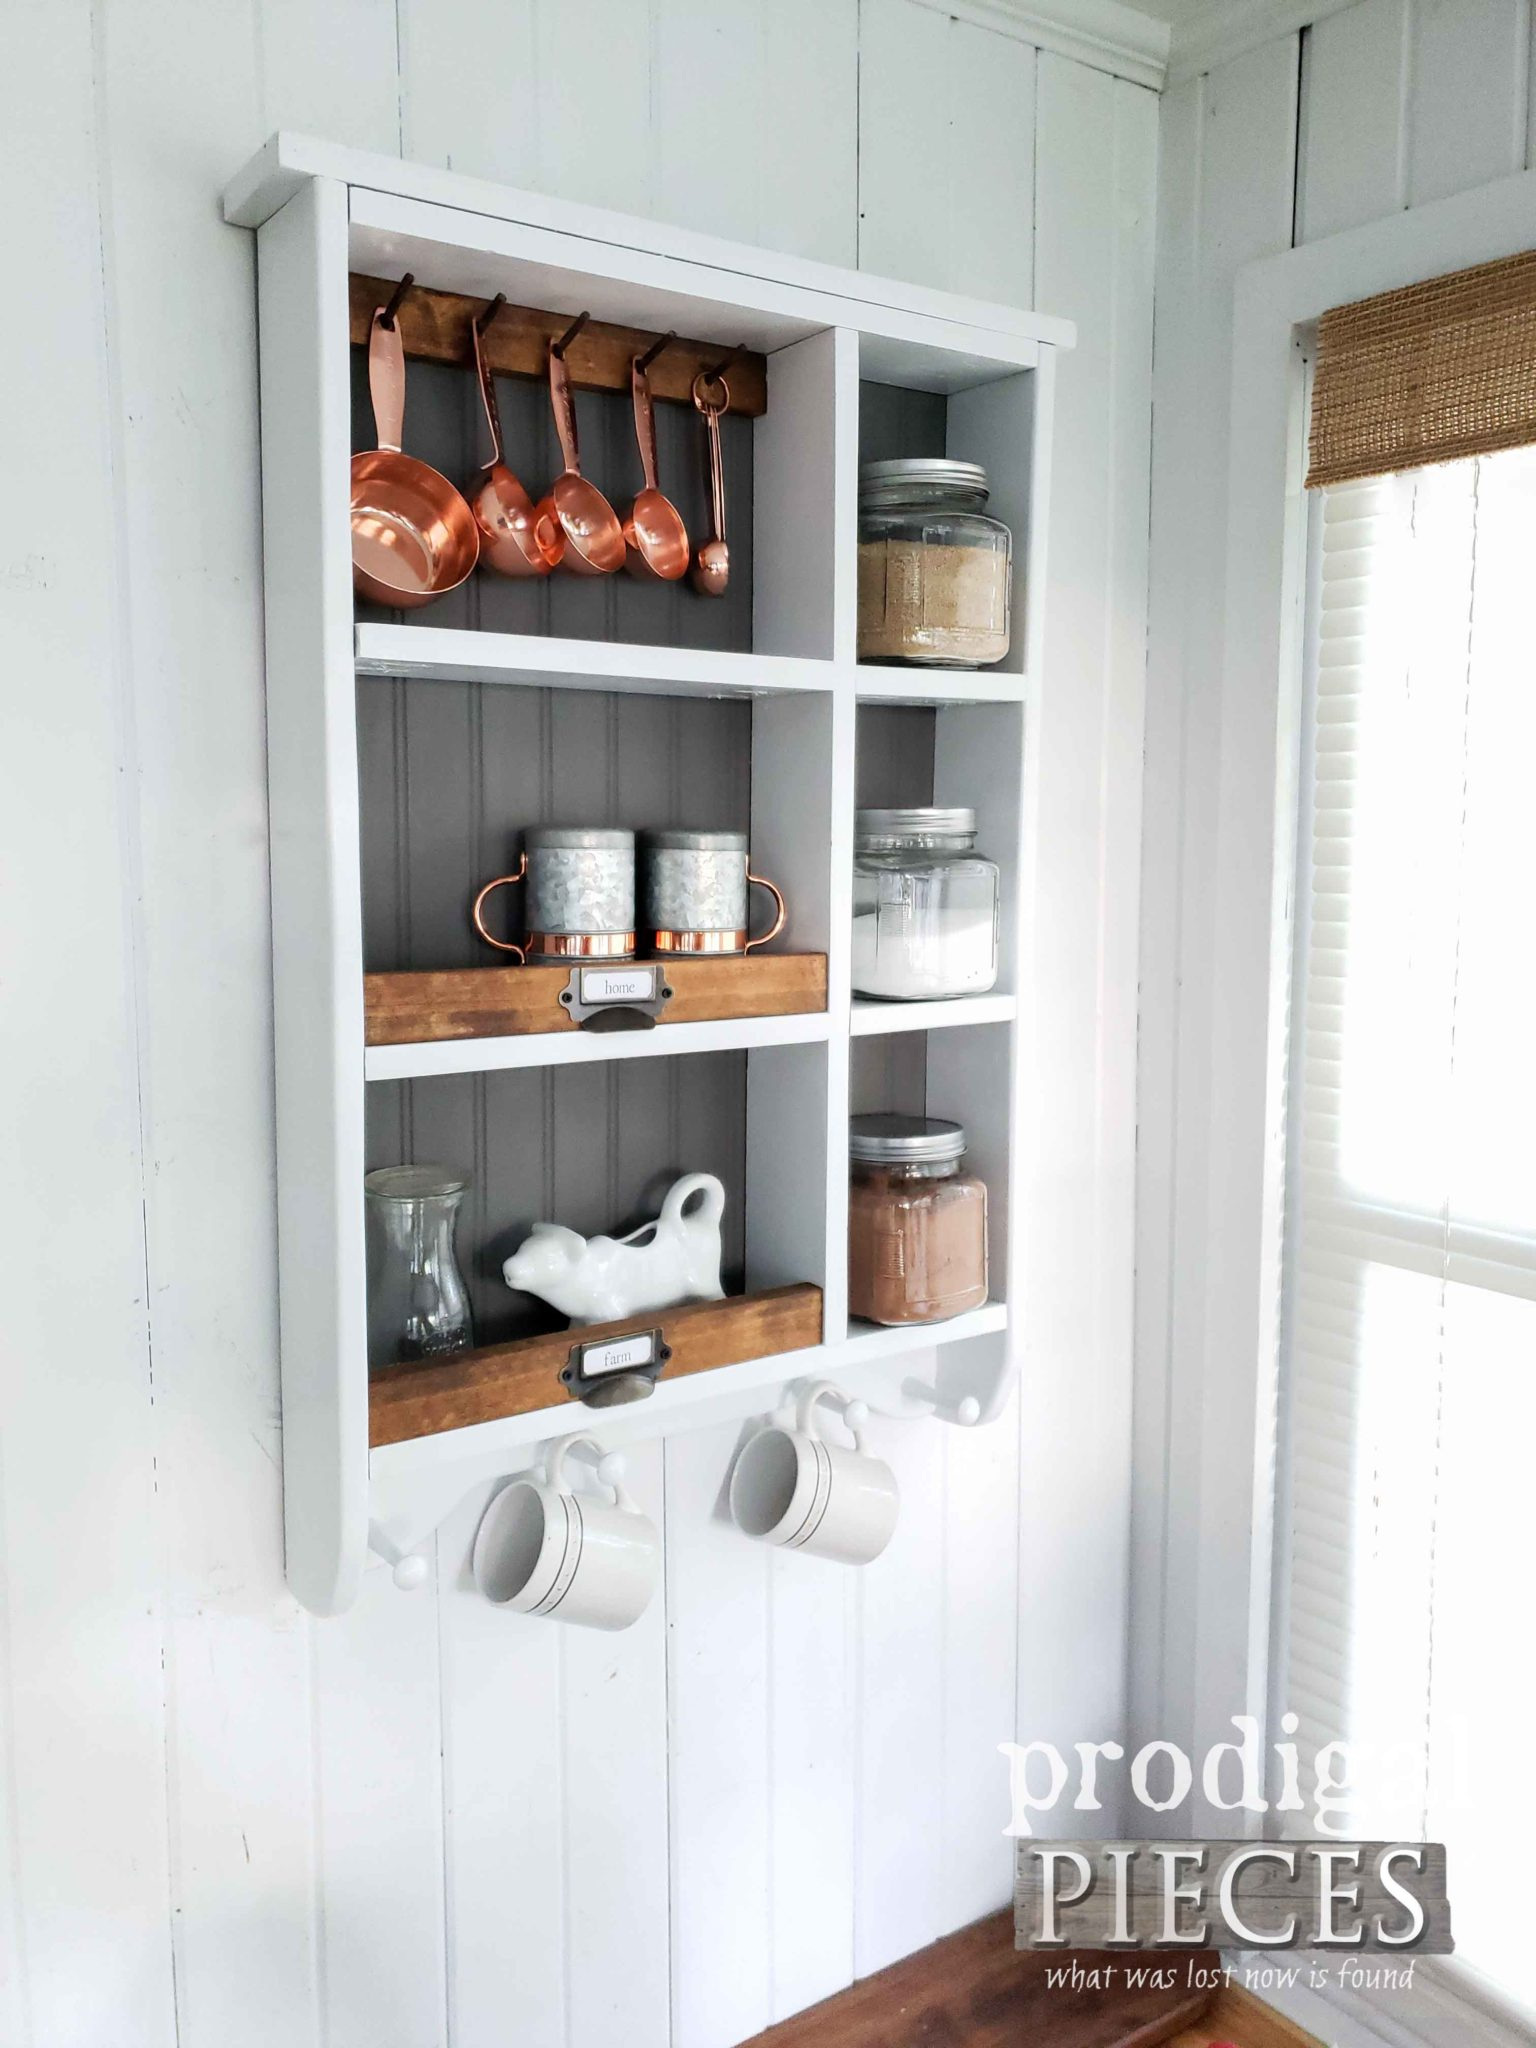 Modern Farmhouse Kitchen Storage Cubby with Plenty of Space to Store your Essentials by Larissa of Prodigal Pieces | prodigalpieces.com